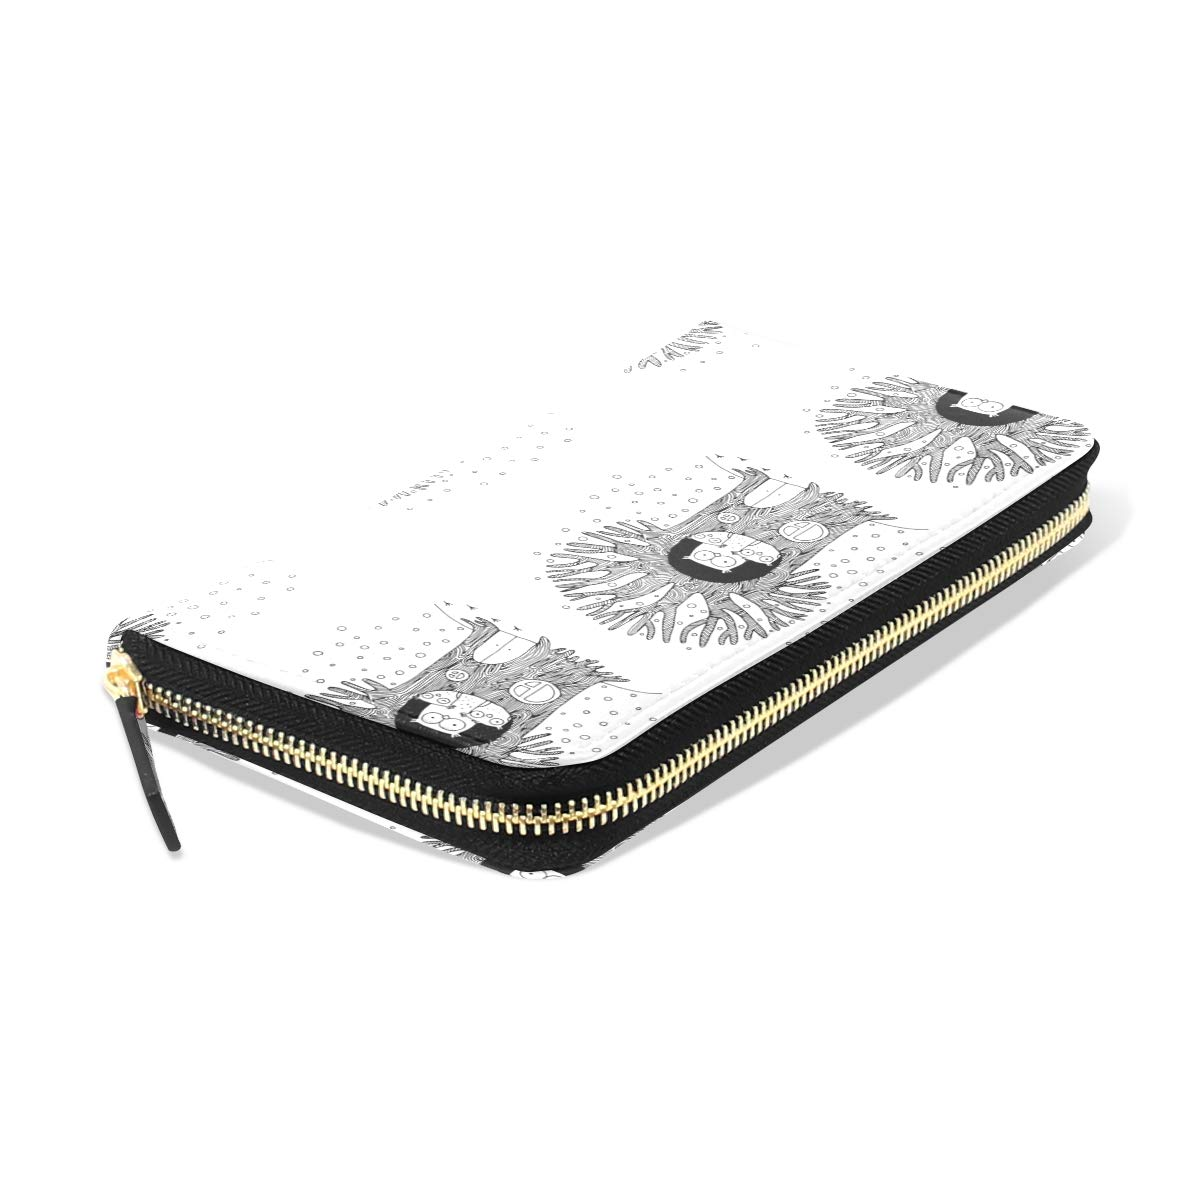 Women LeatherTree And Family Of Owls Winter Wallet Large Capacity Zipper Travel Wristlet Bags Clutch Cellphone Bag